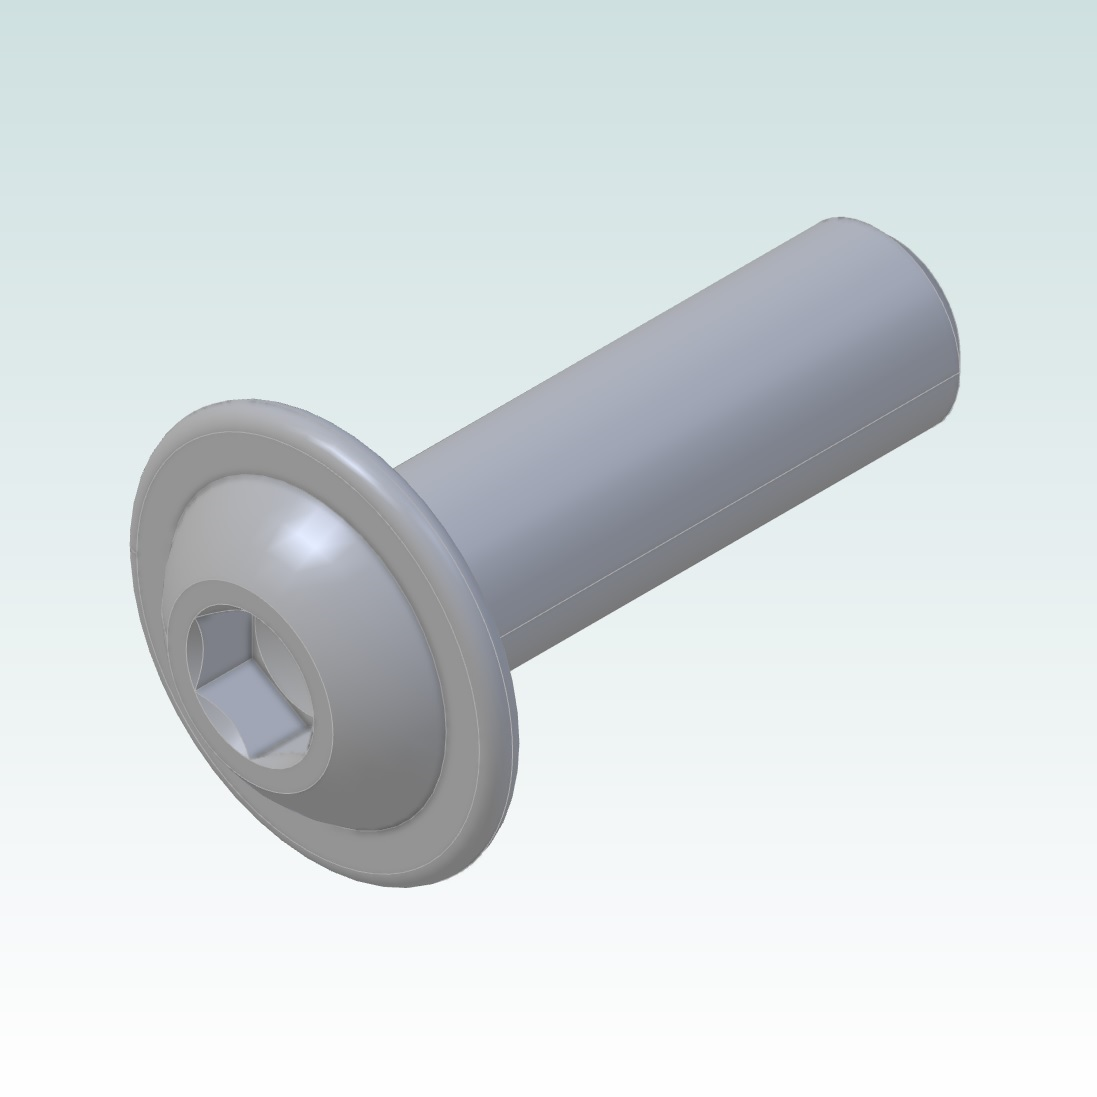 m6x20 bolt iso 73802 with flange